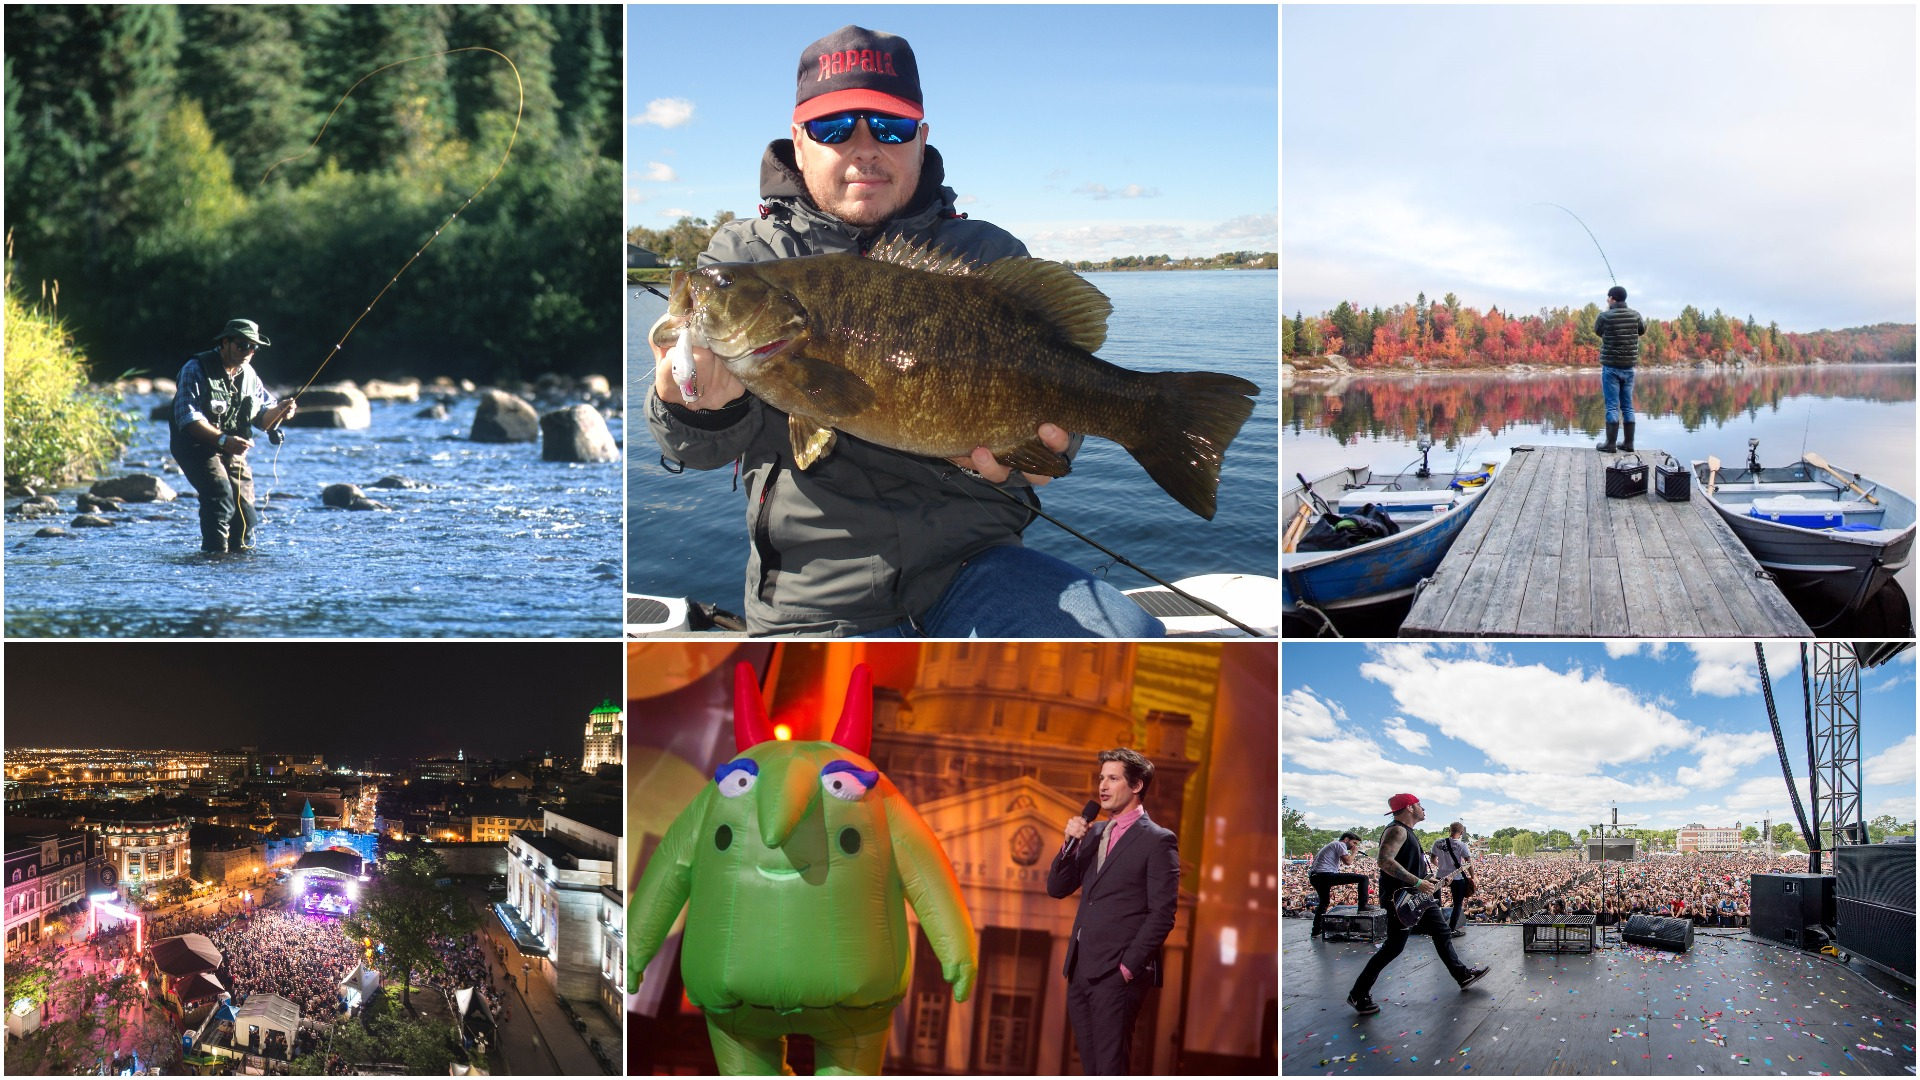 Quebec cool: 3 thunderous fishing-and-entertainment getaways